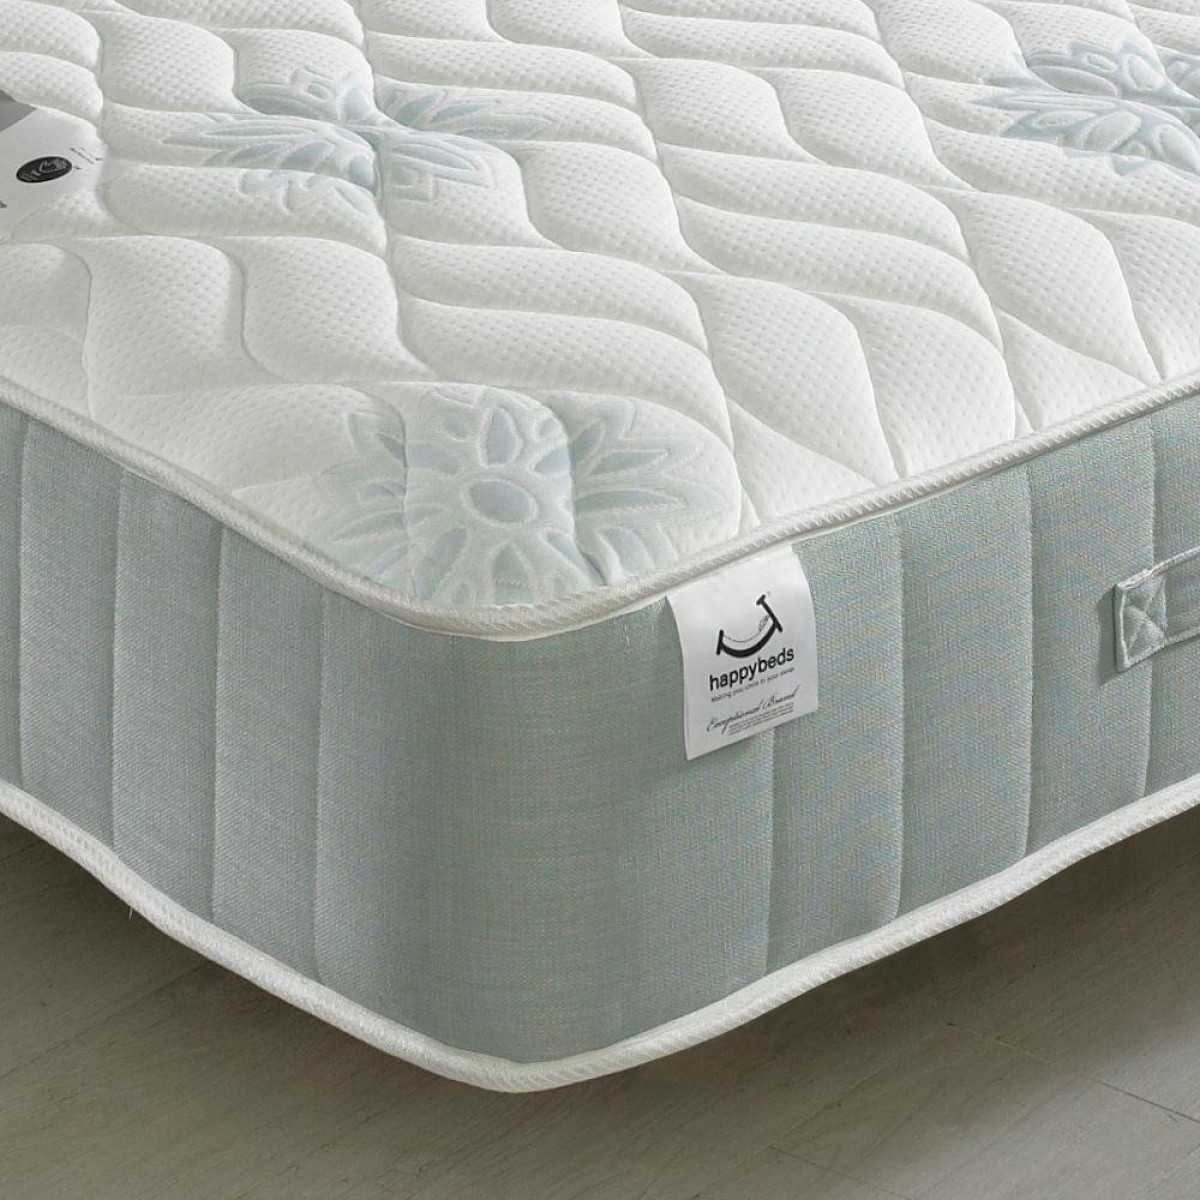 Single Pocket Sprung Memory Foam Mattress New Sensation 1200 Pocket Sprung Memory Foam Mattress